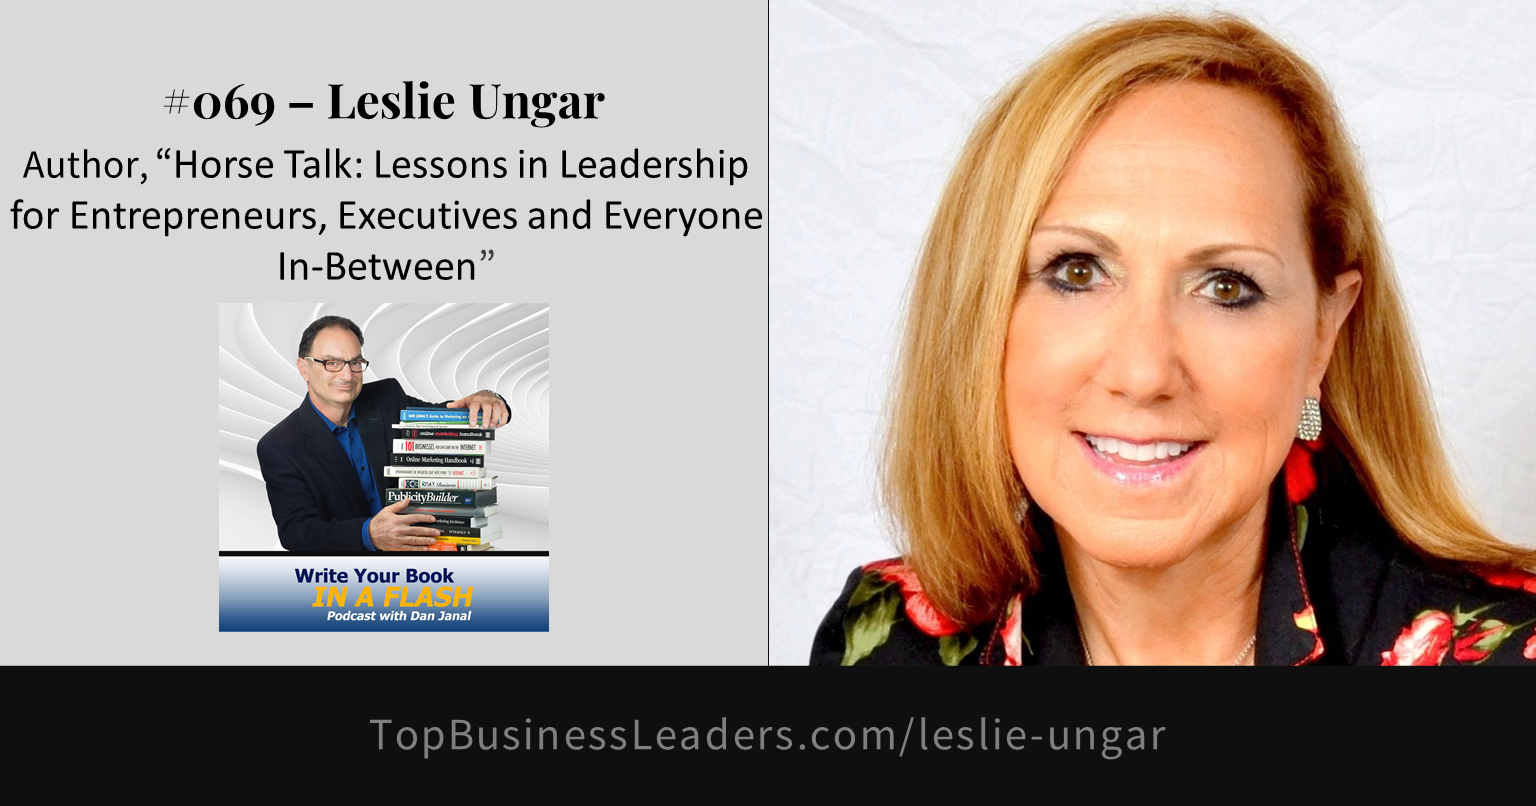 leslie-ungar-author-horse-talk-lessons-in-leadership-for-entrepreneurs-executives-everyone-in-between